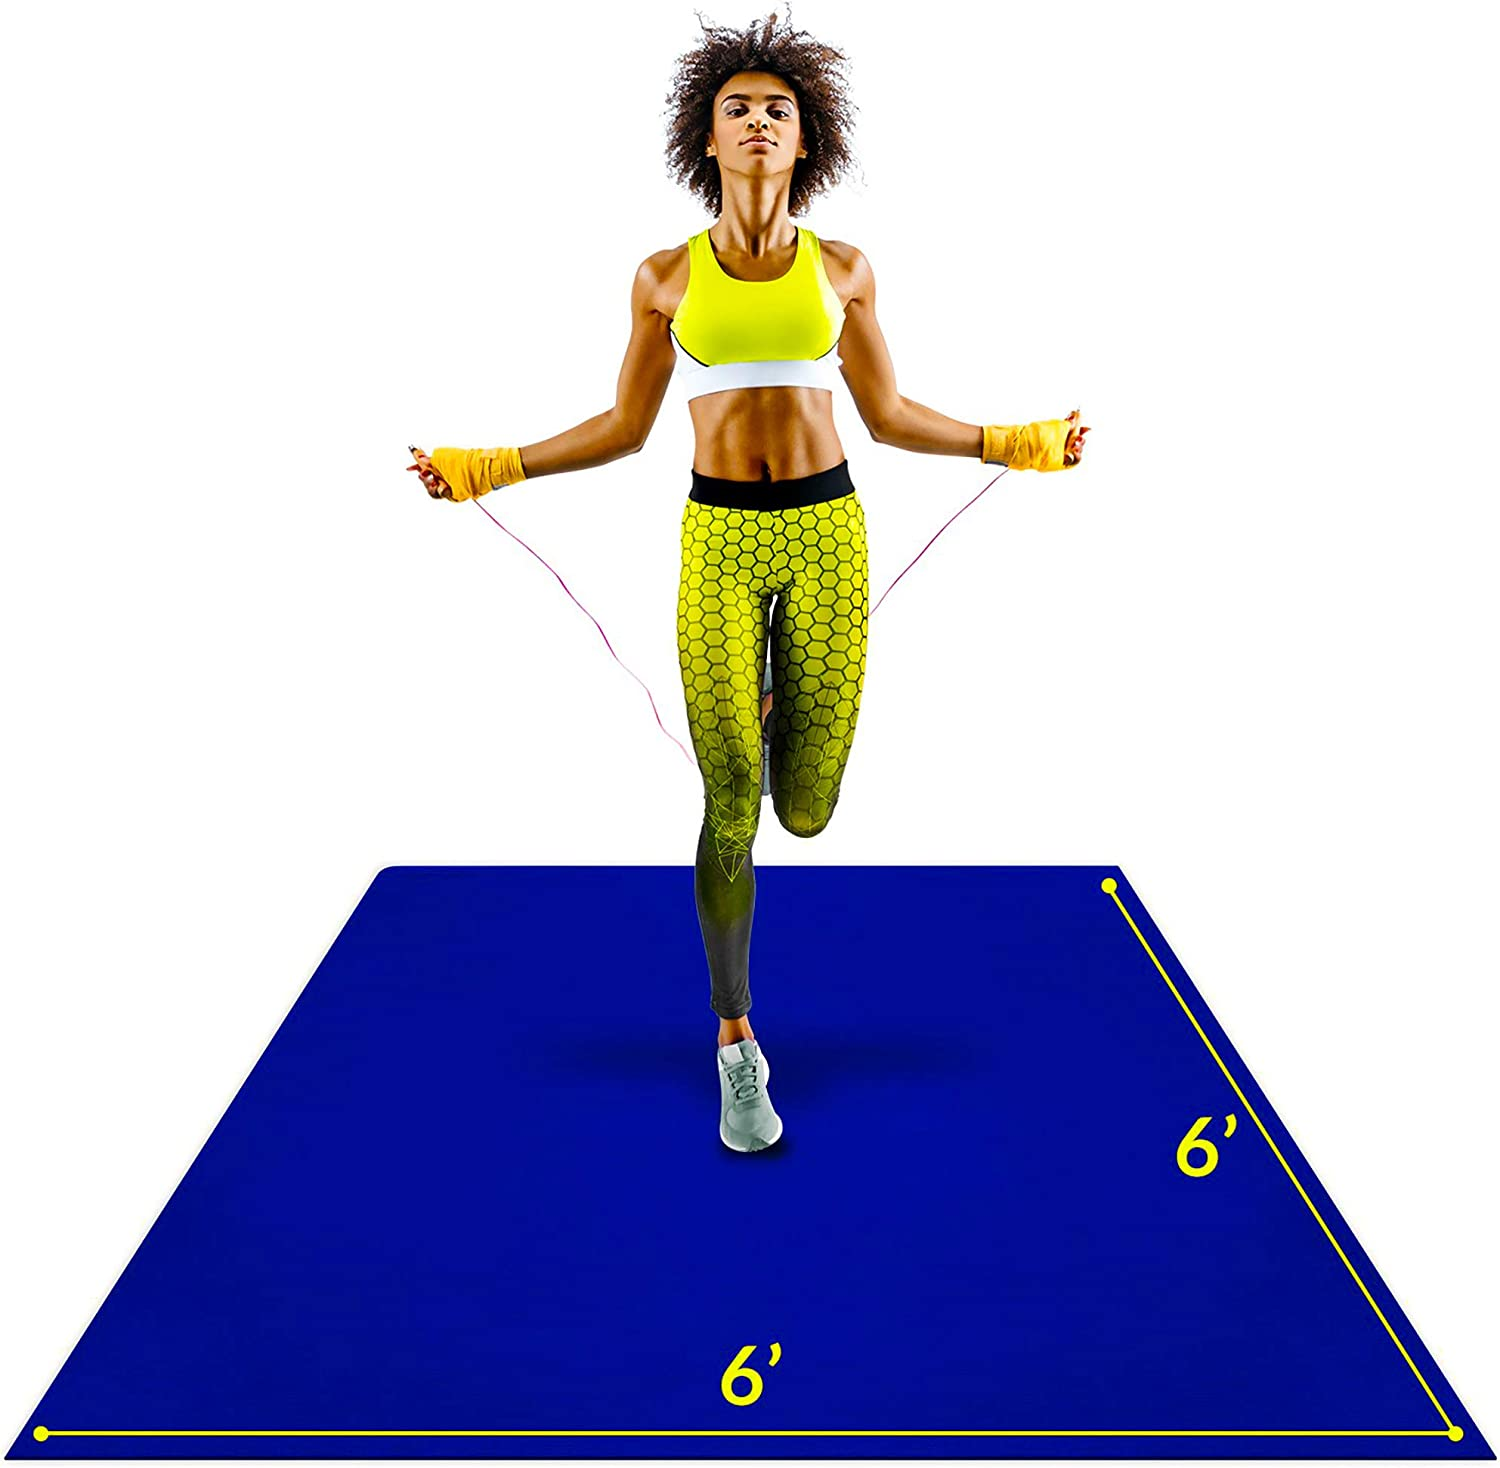 Large Exercise Mat 6'x6'x7mm Workout Durable for 5% OFF trust Ho Home